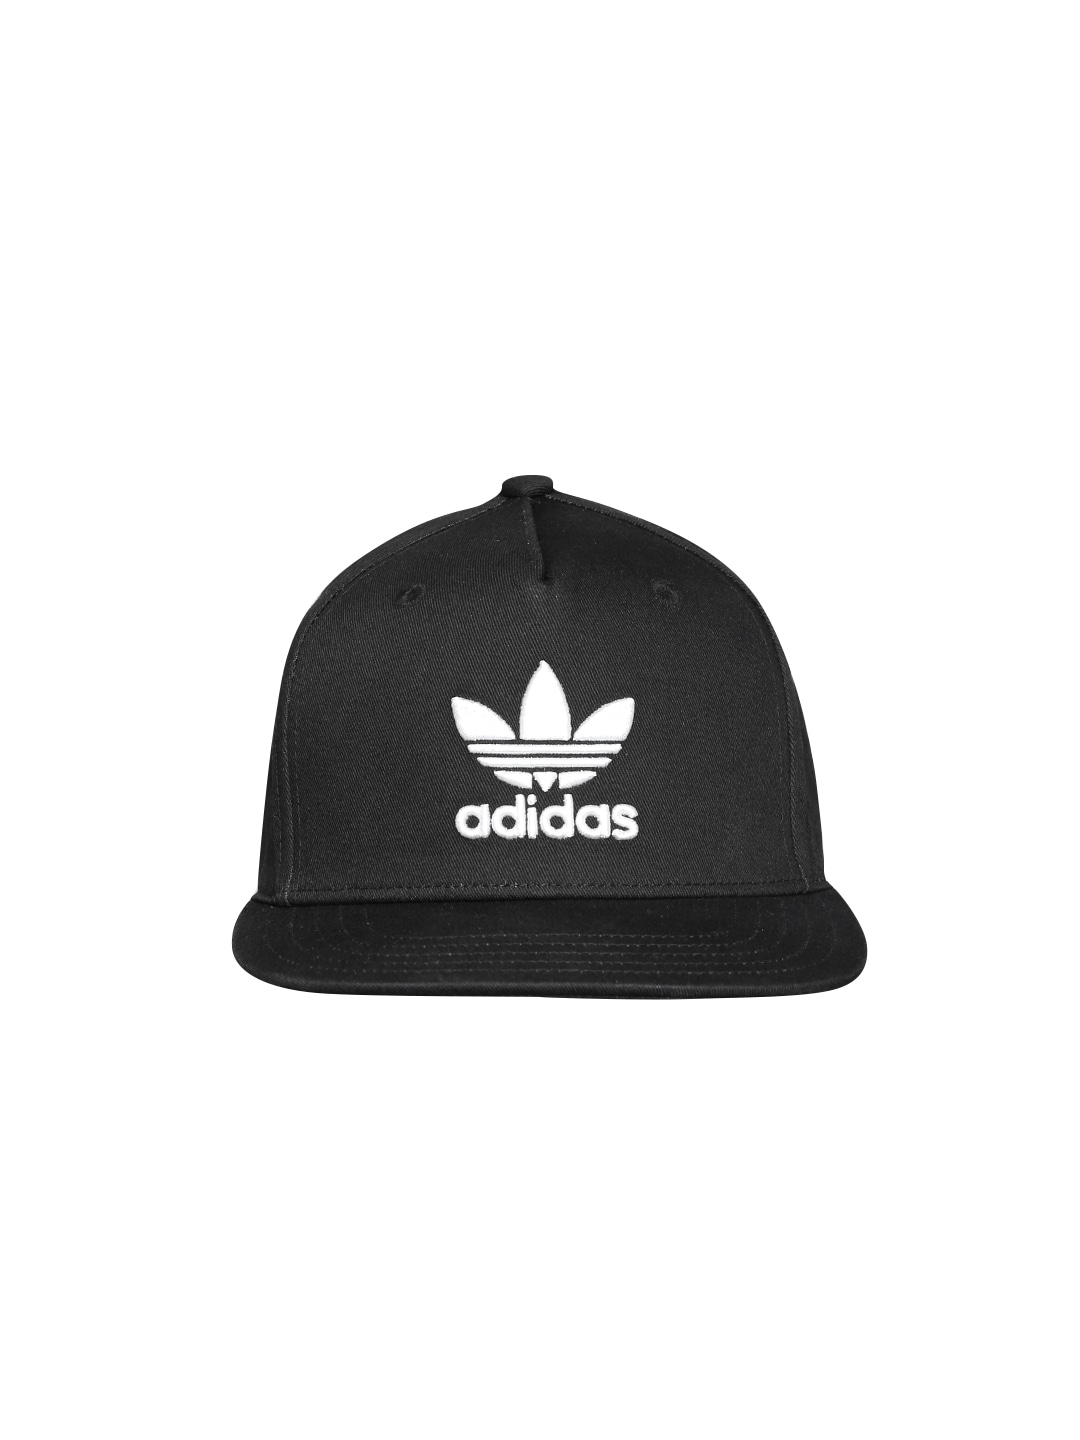 f65687d6a93e49 Men Adidas Original Caps - Buy Men Adidas Original Caps online in India